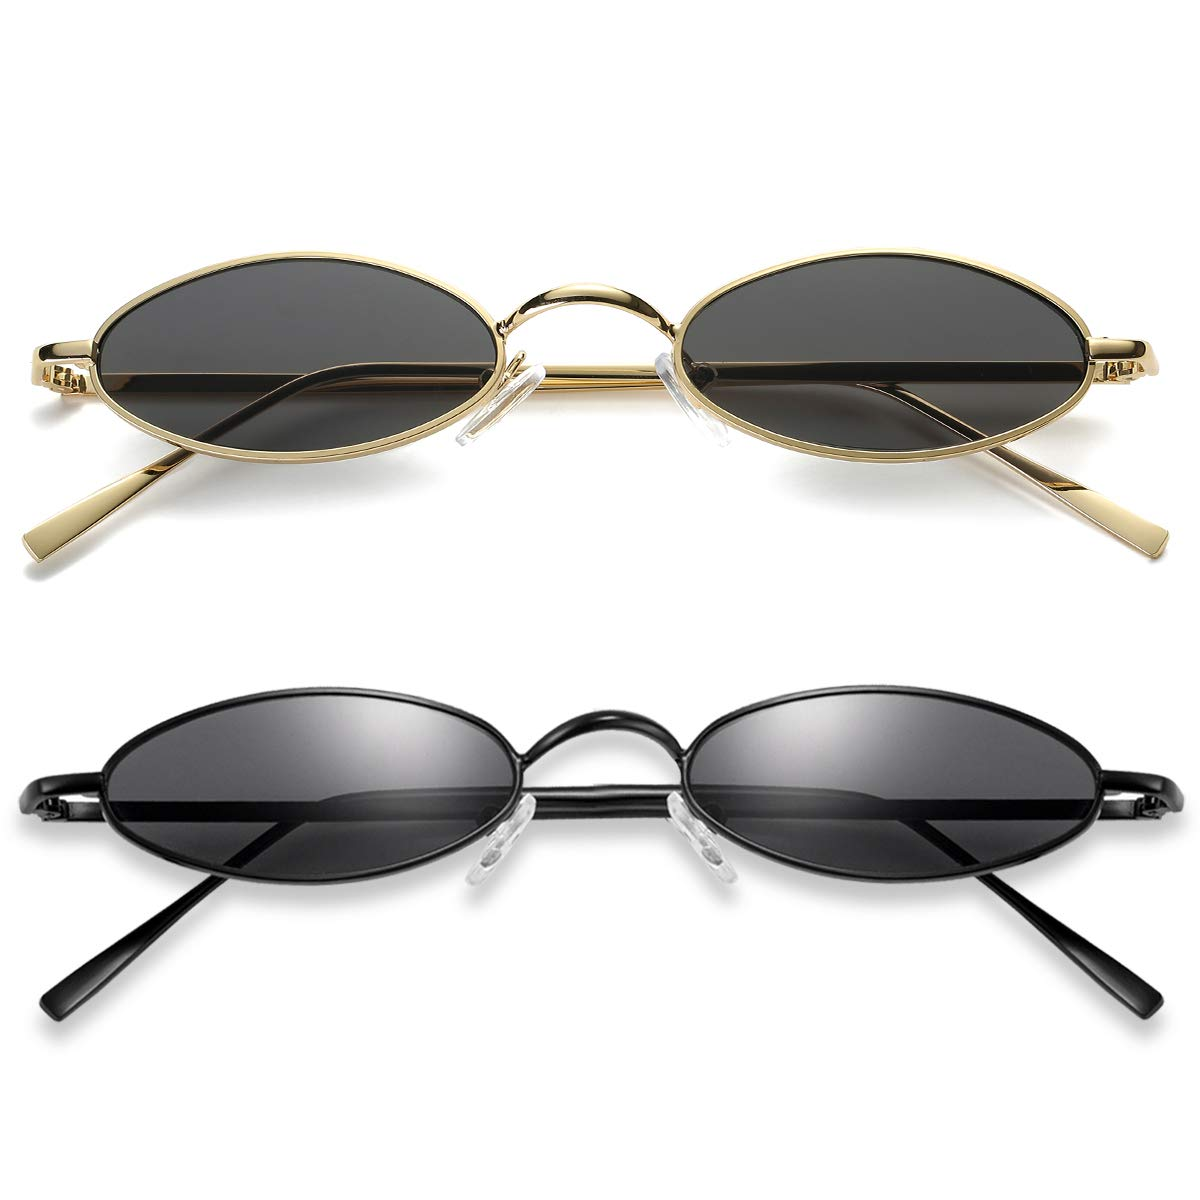 Vintage Oval Sunglasses For Women – Feirdio Small Metal Frame Candy Color 2265